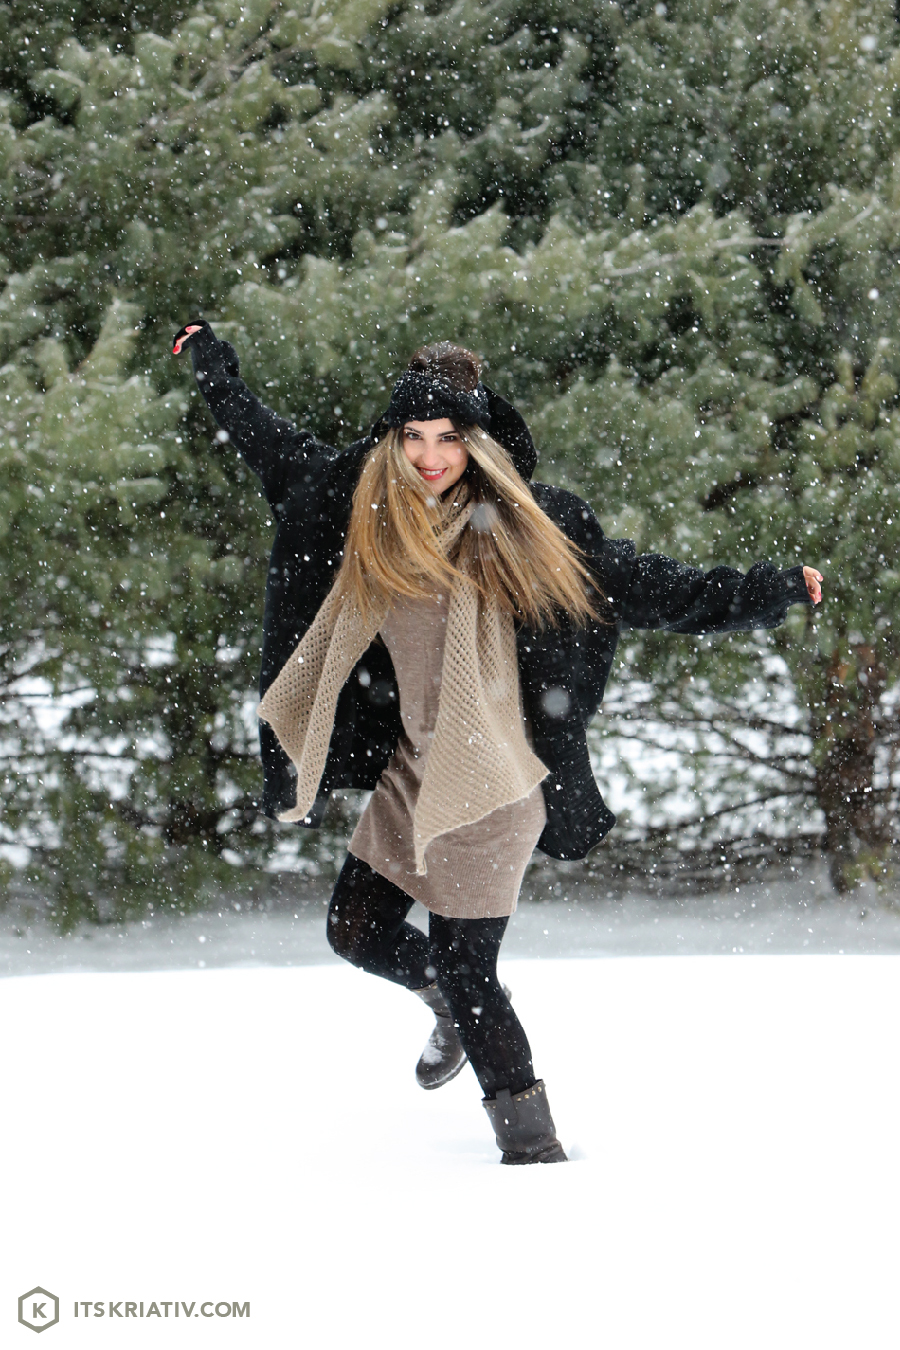 Its-Kriativ-Fashion-Let-It-Snow-Winter-05.jpg